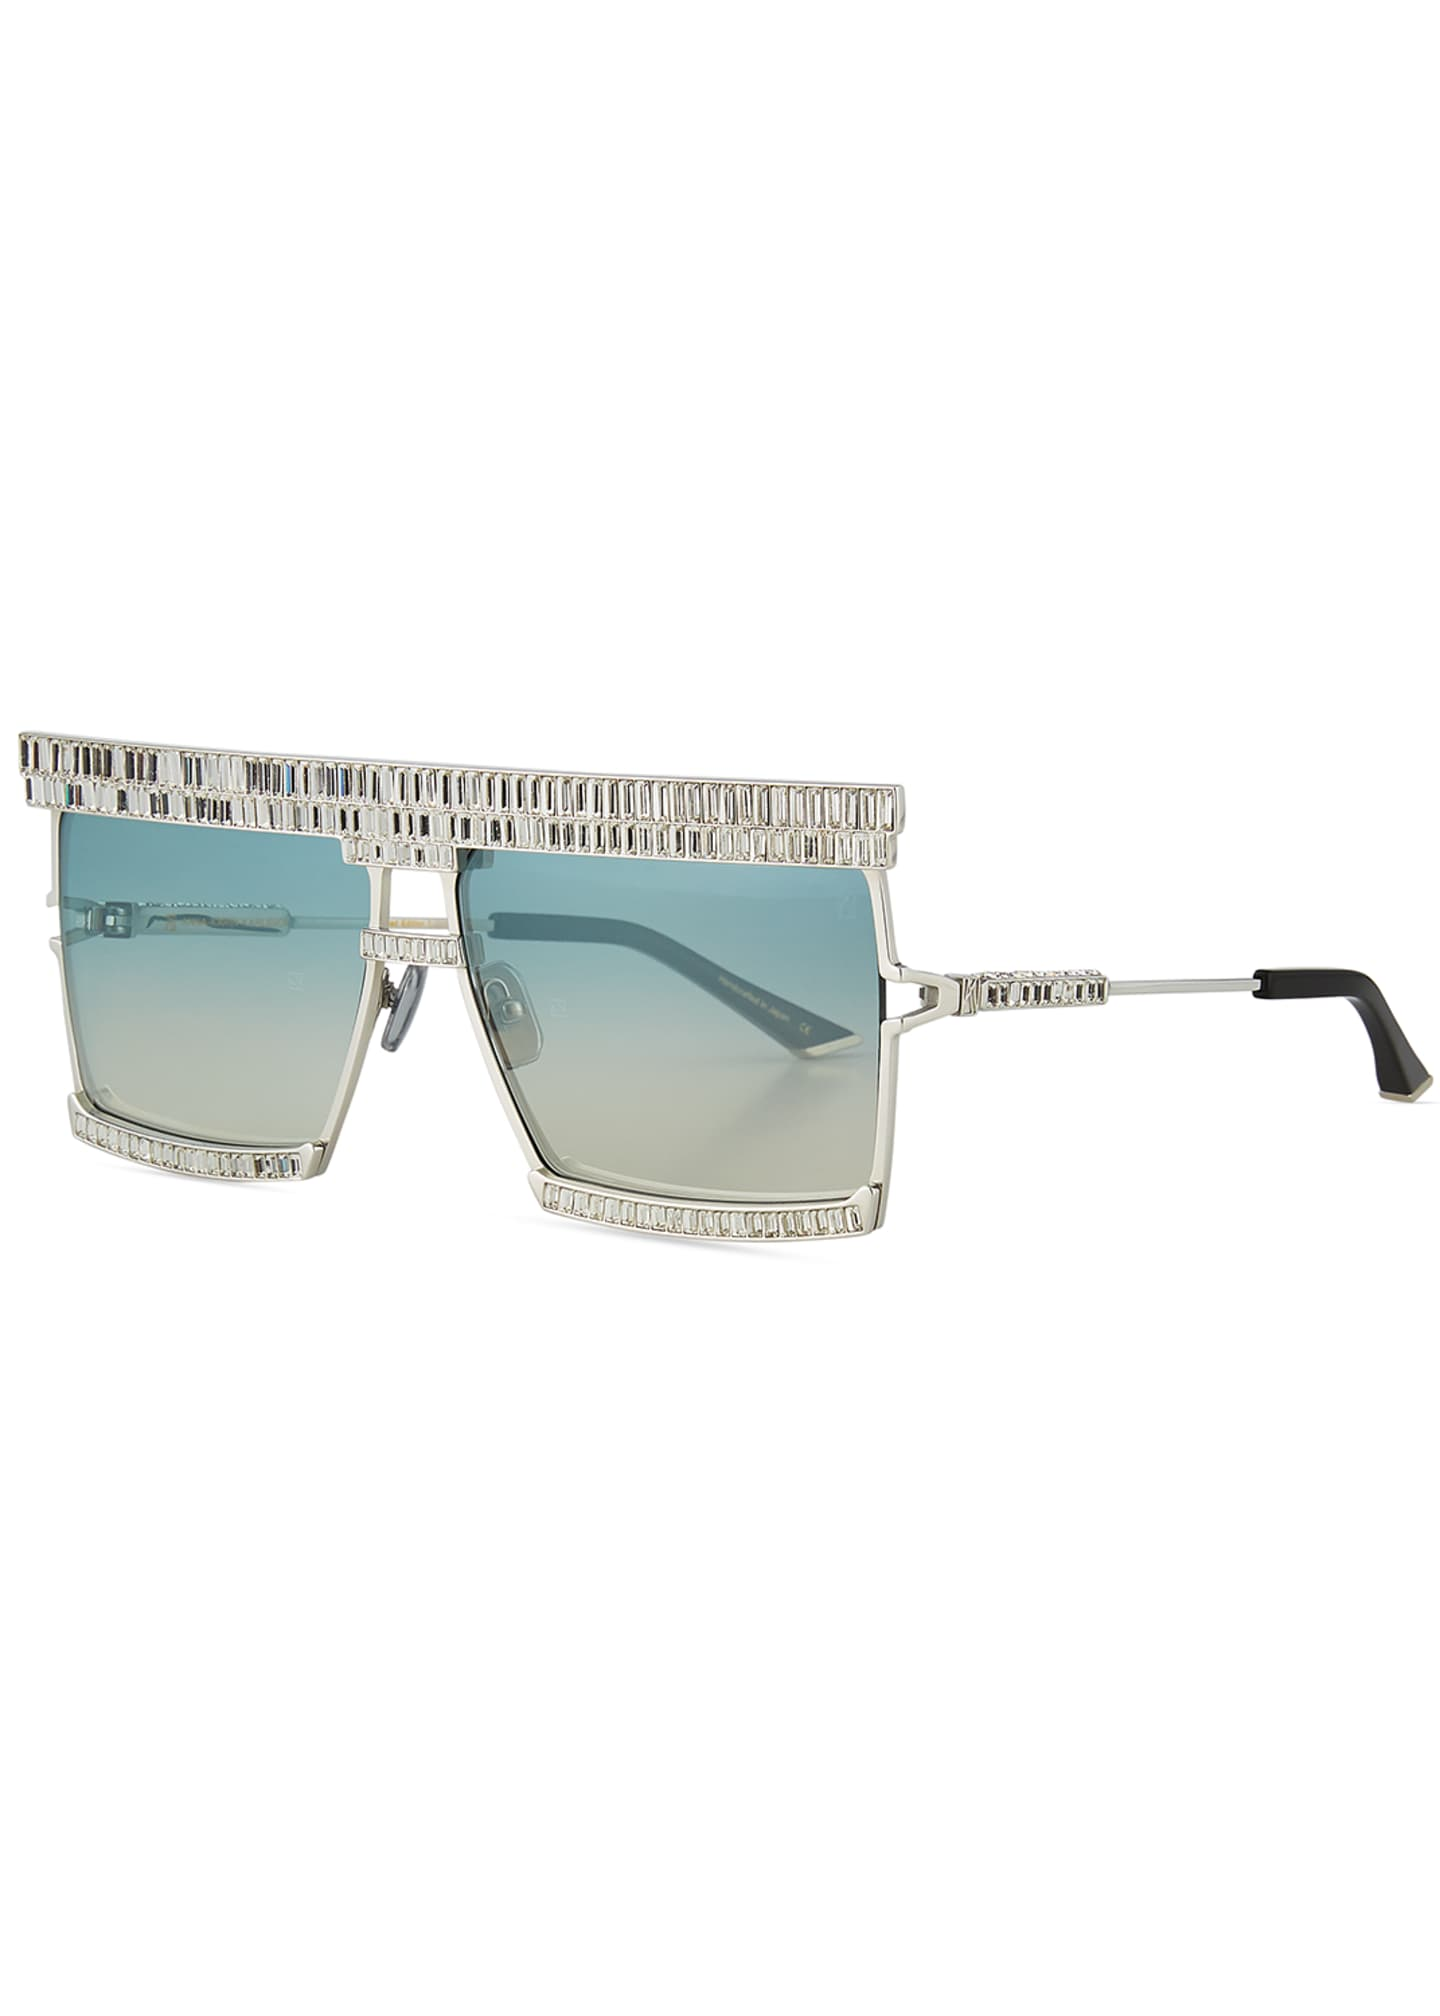 Anna-Karin Karlsson The Emperor Square Titanium Sunglasses w/